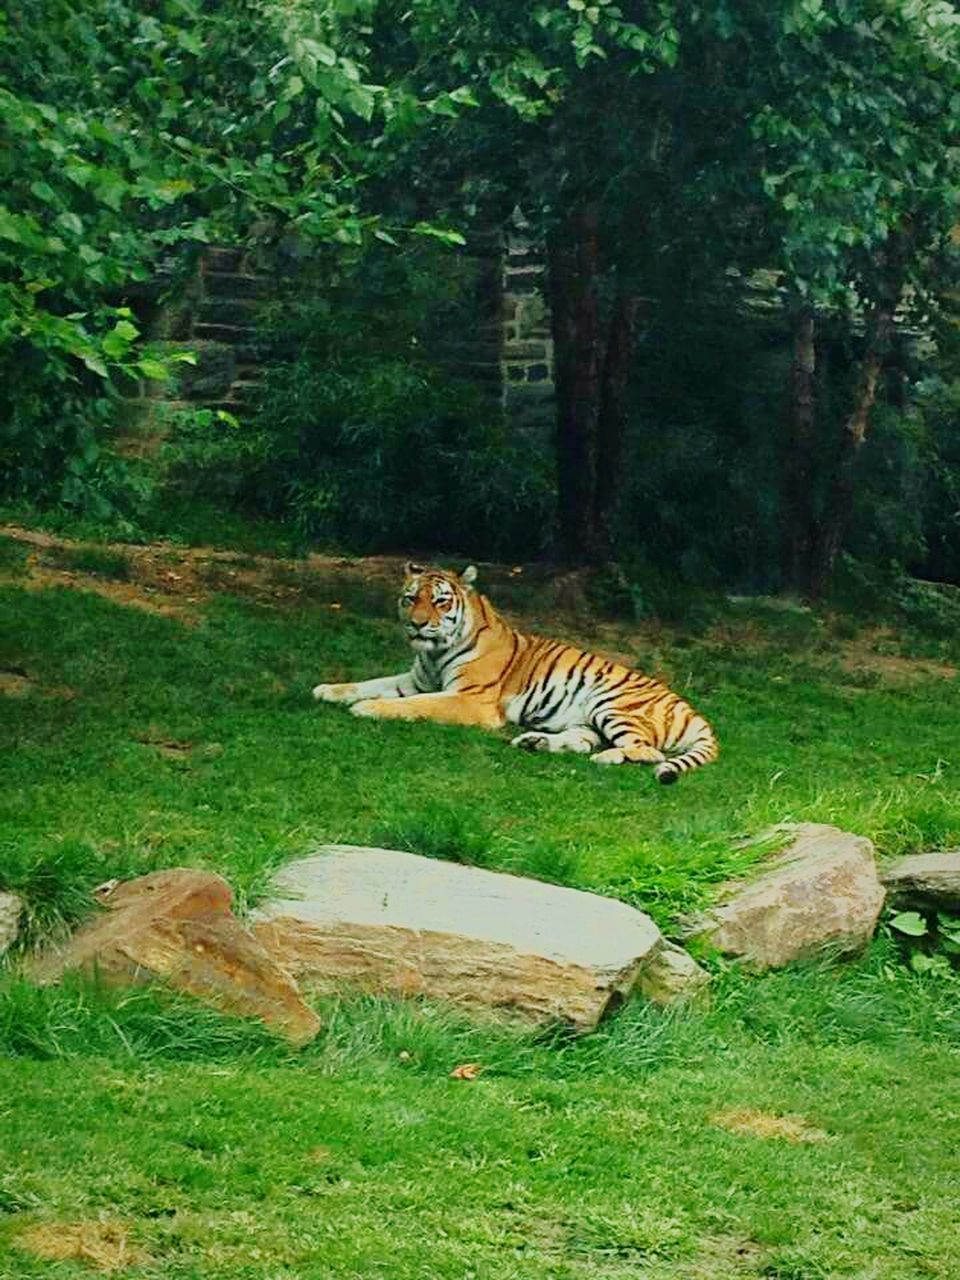 tiger, one animal, animal themes, animals in the wild, tree, green color, mammal, nature, grass, forest, day, white tiger, animal wildlife, outdoors, feline, no people, animal markings